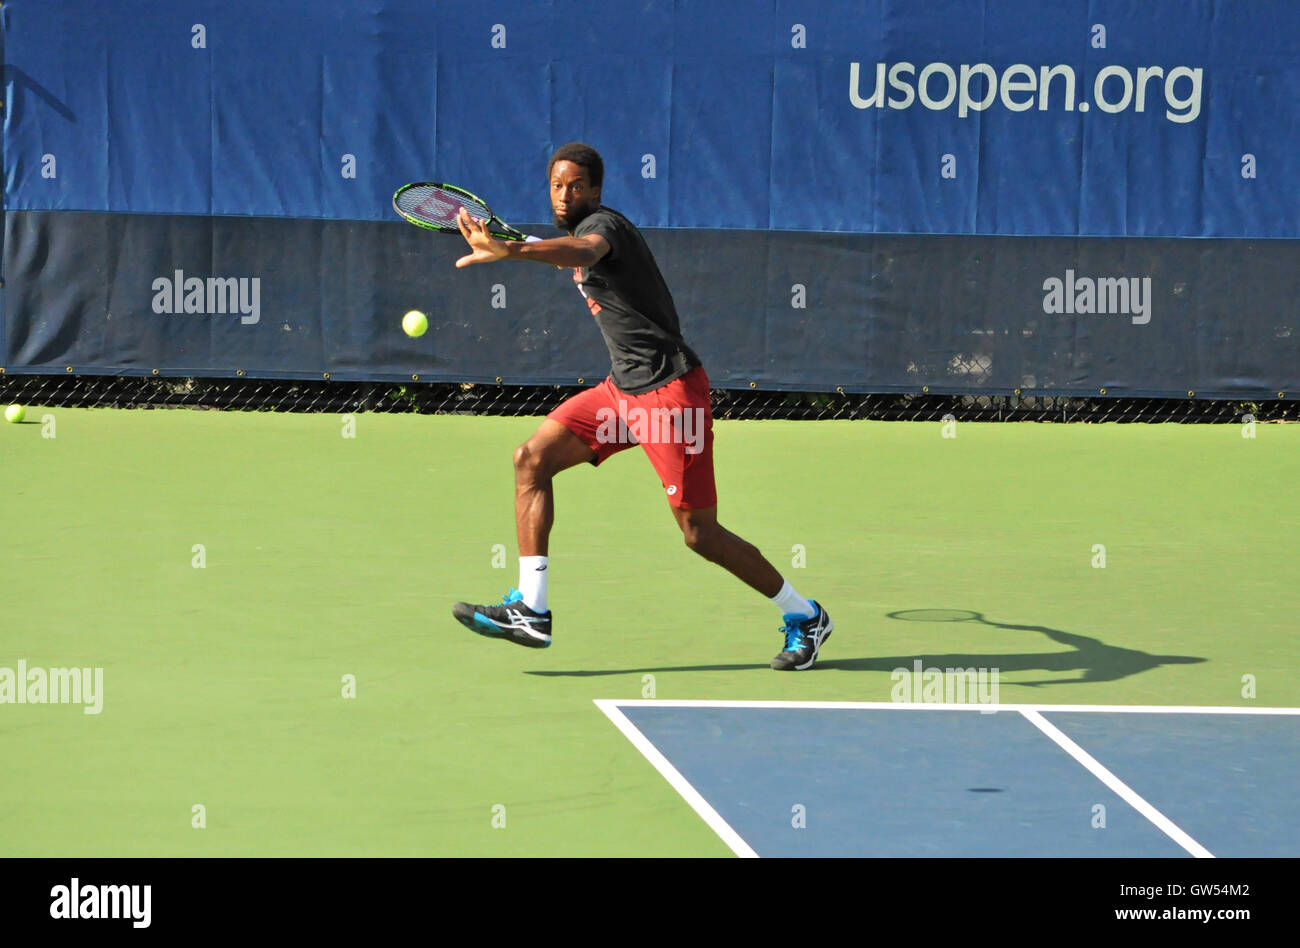 Queens, NY. September 8 2016.  Gael Monfils practicing before his US open semifinal match. © Veronica Bruno/Alamy - Stock Image